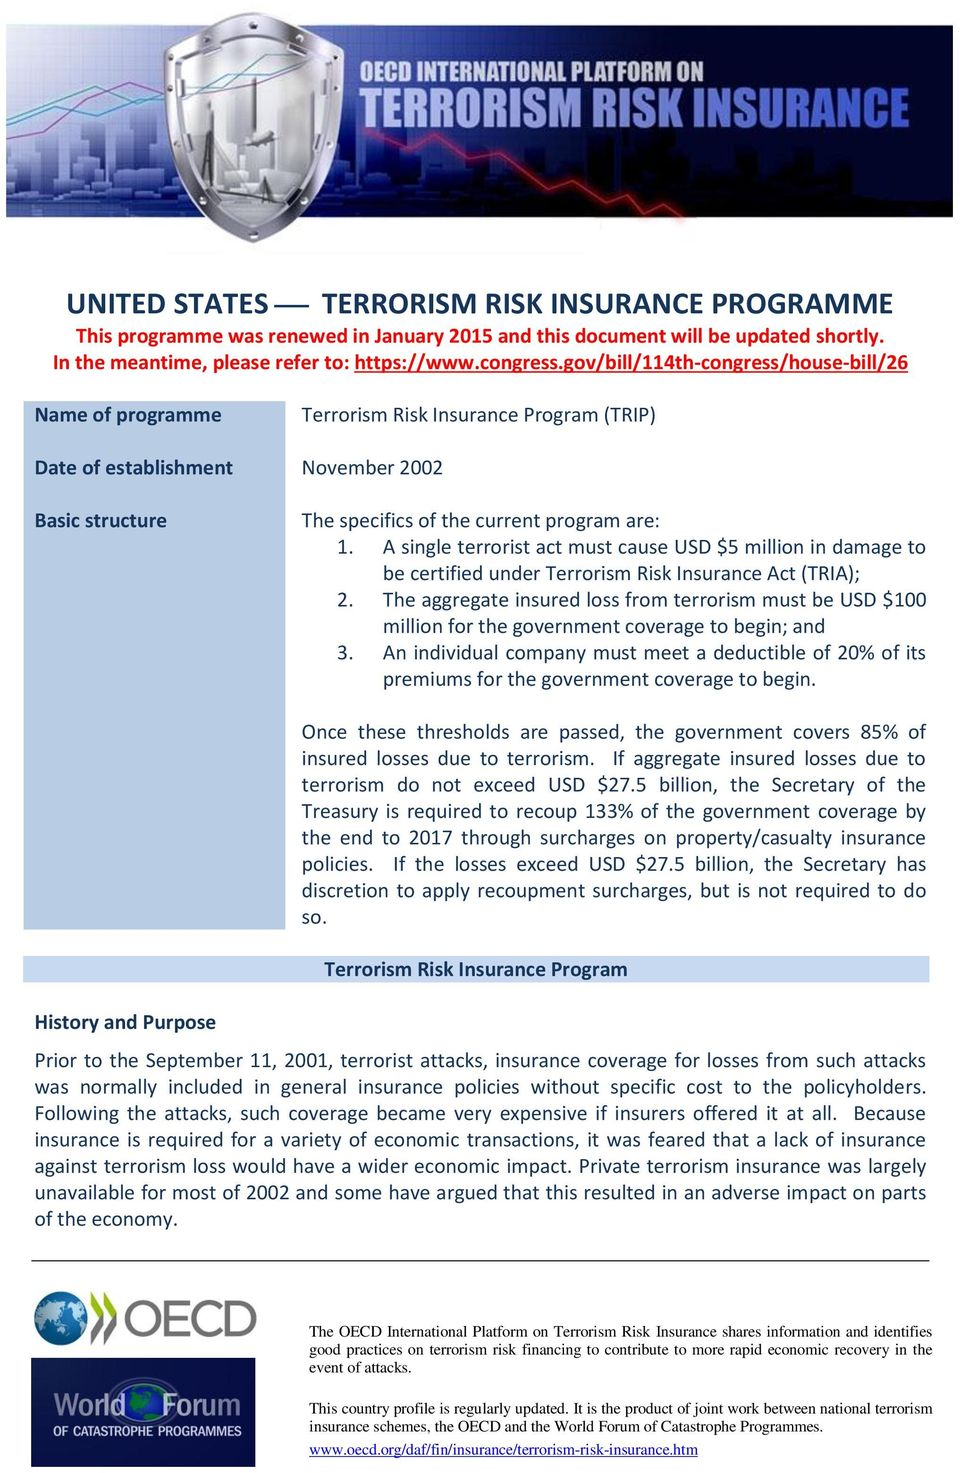 A single terrorist act must cause USD $5 million in damage to be certified under Terrorism Risk Insurance Act (TRIA); 2.